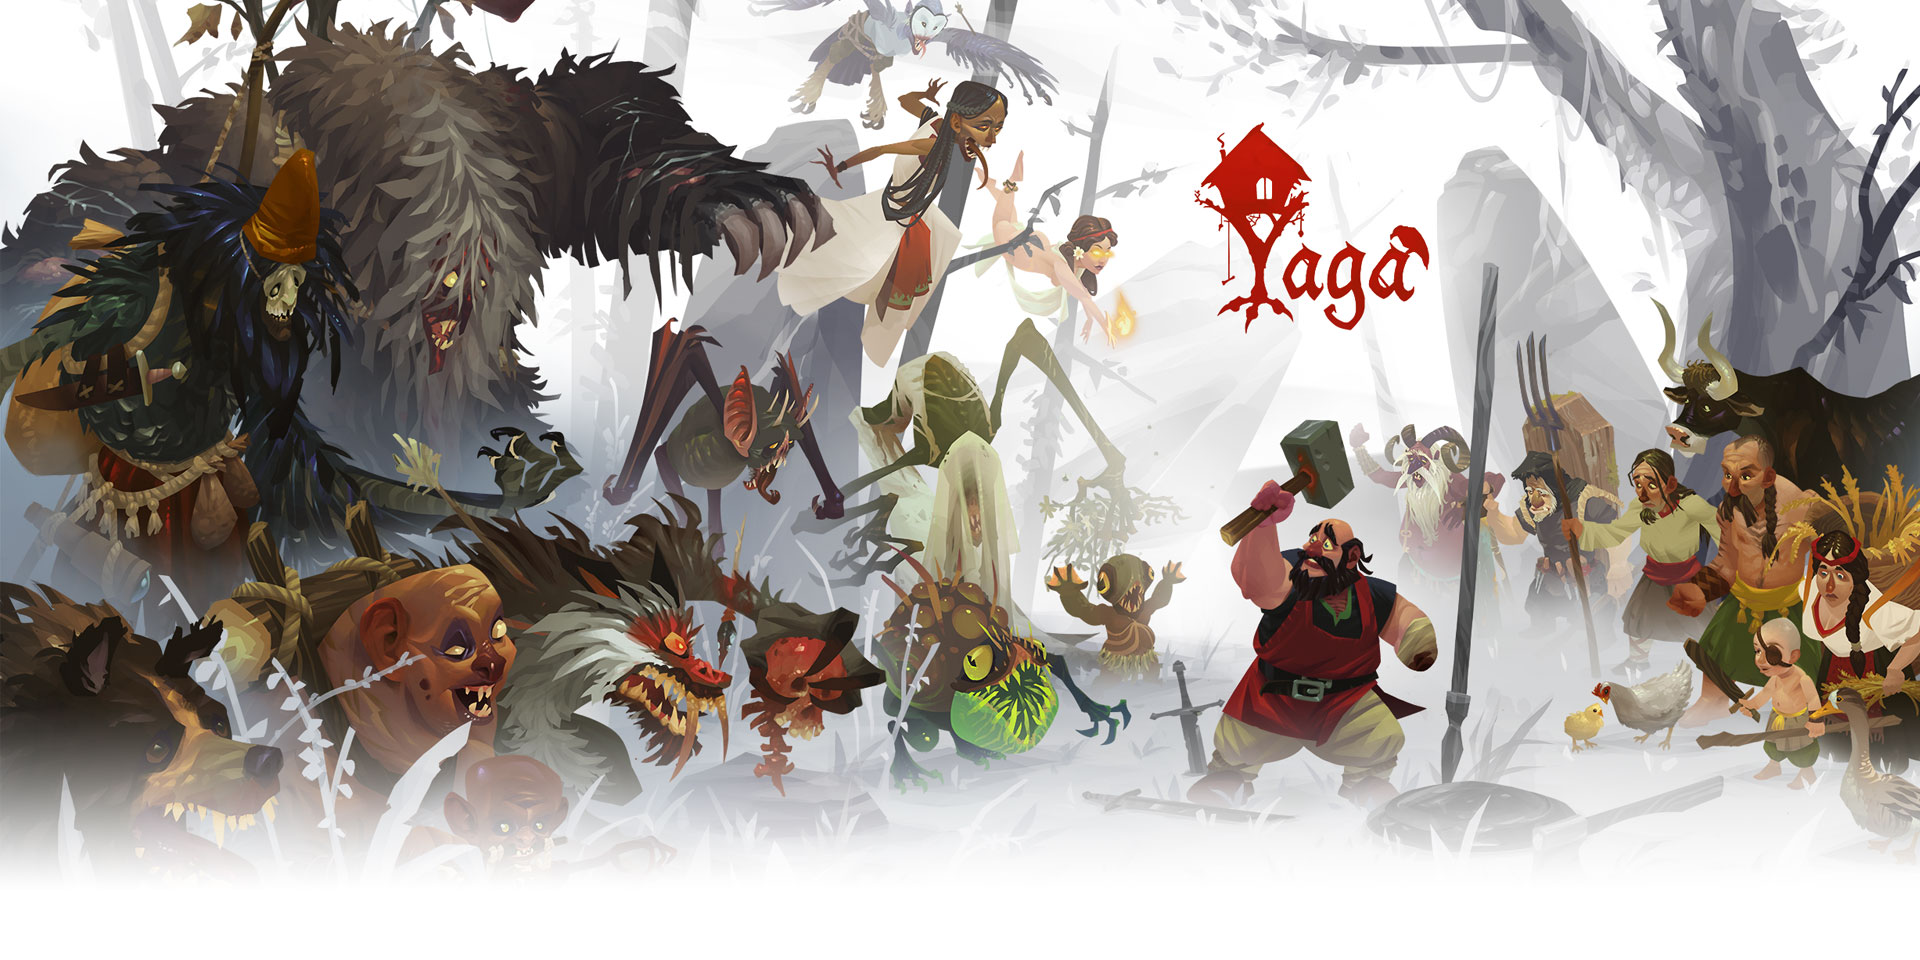 Yaga is Out November 12 on PC and Consoles!